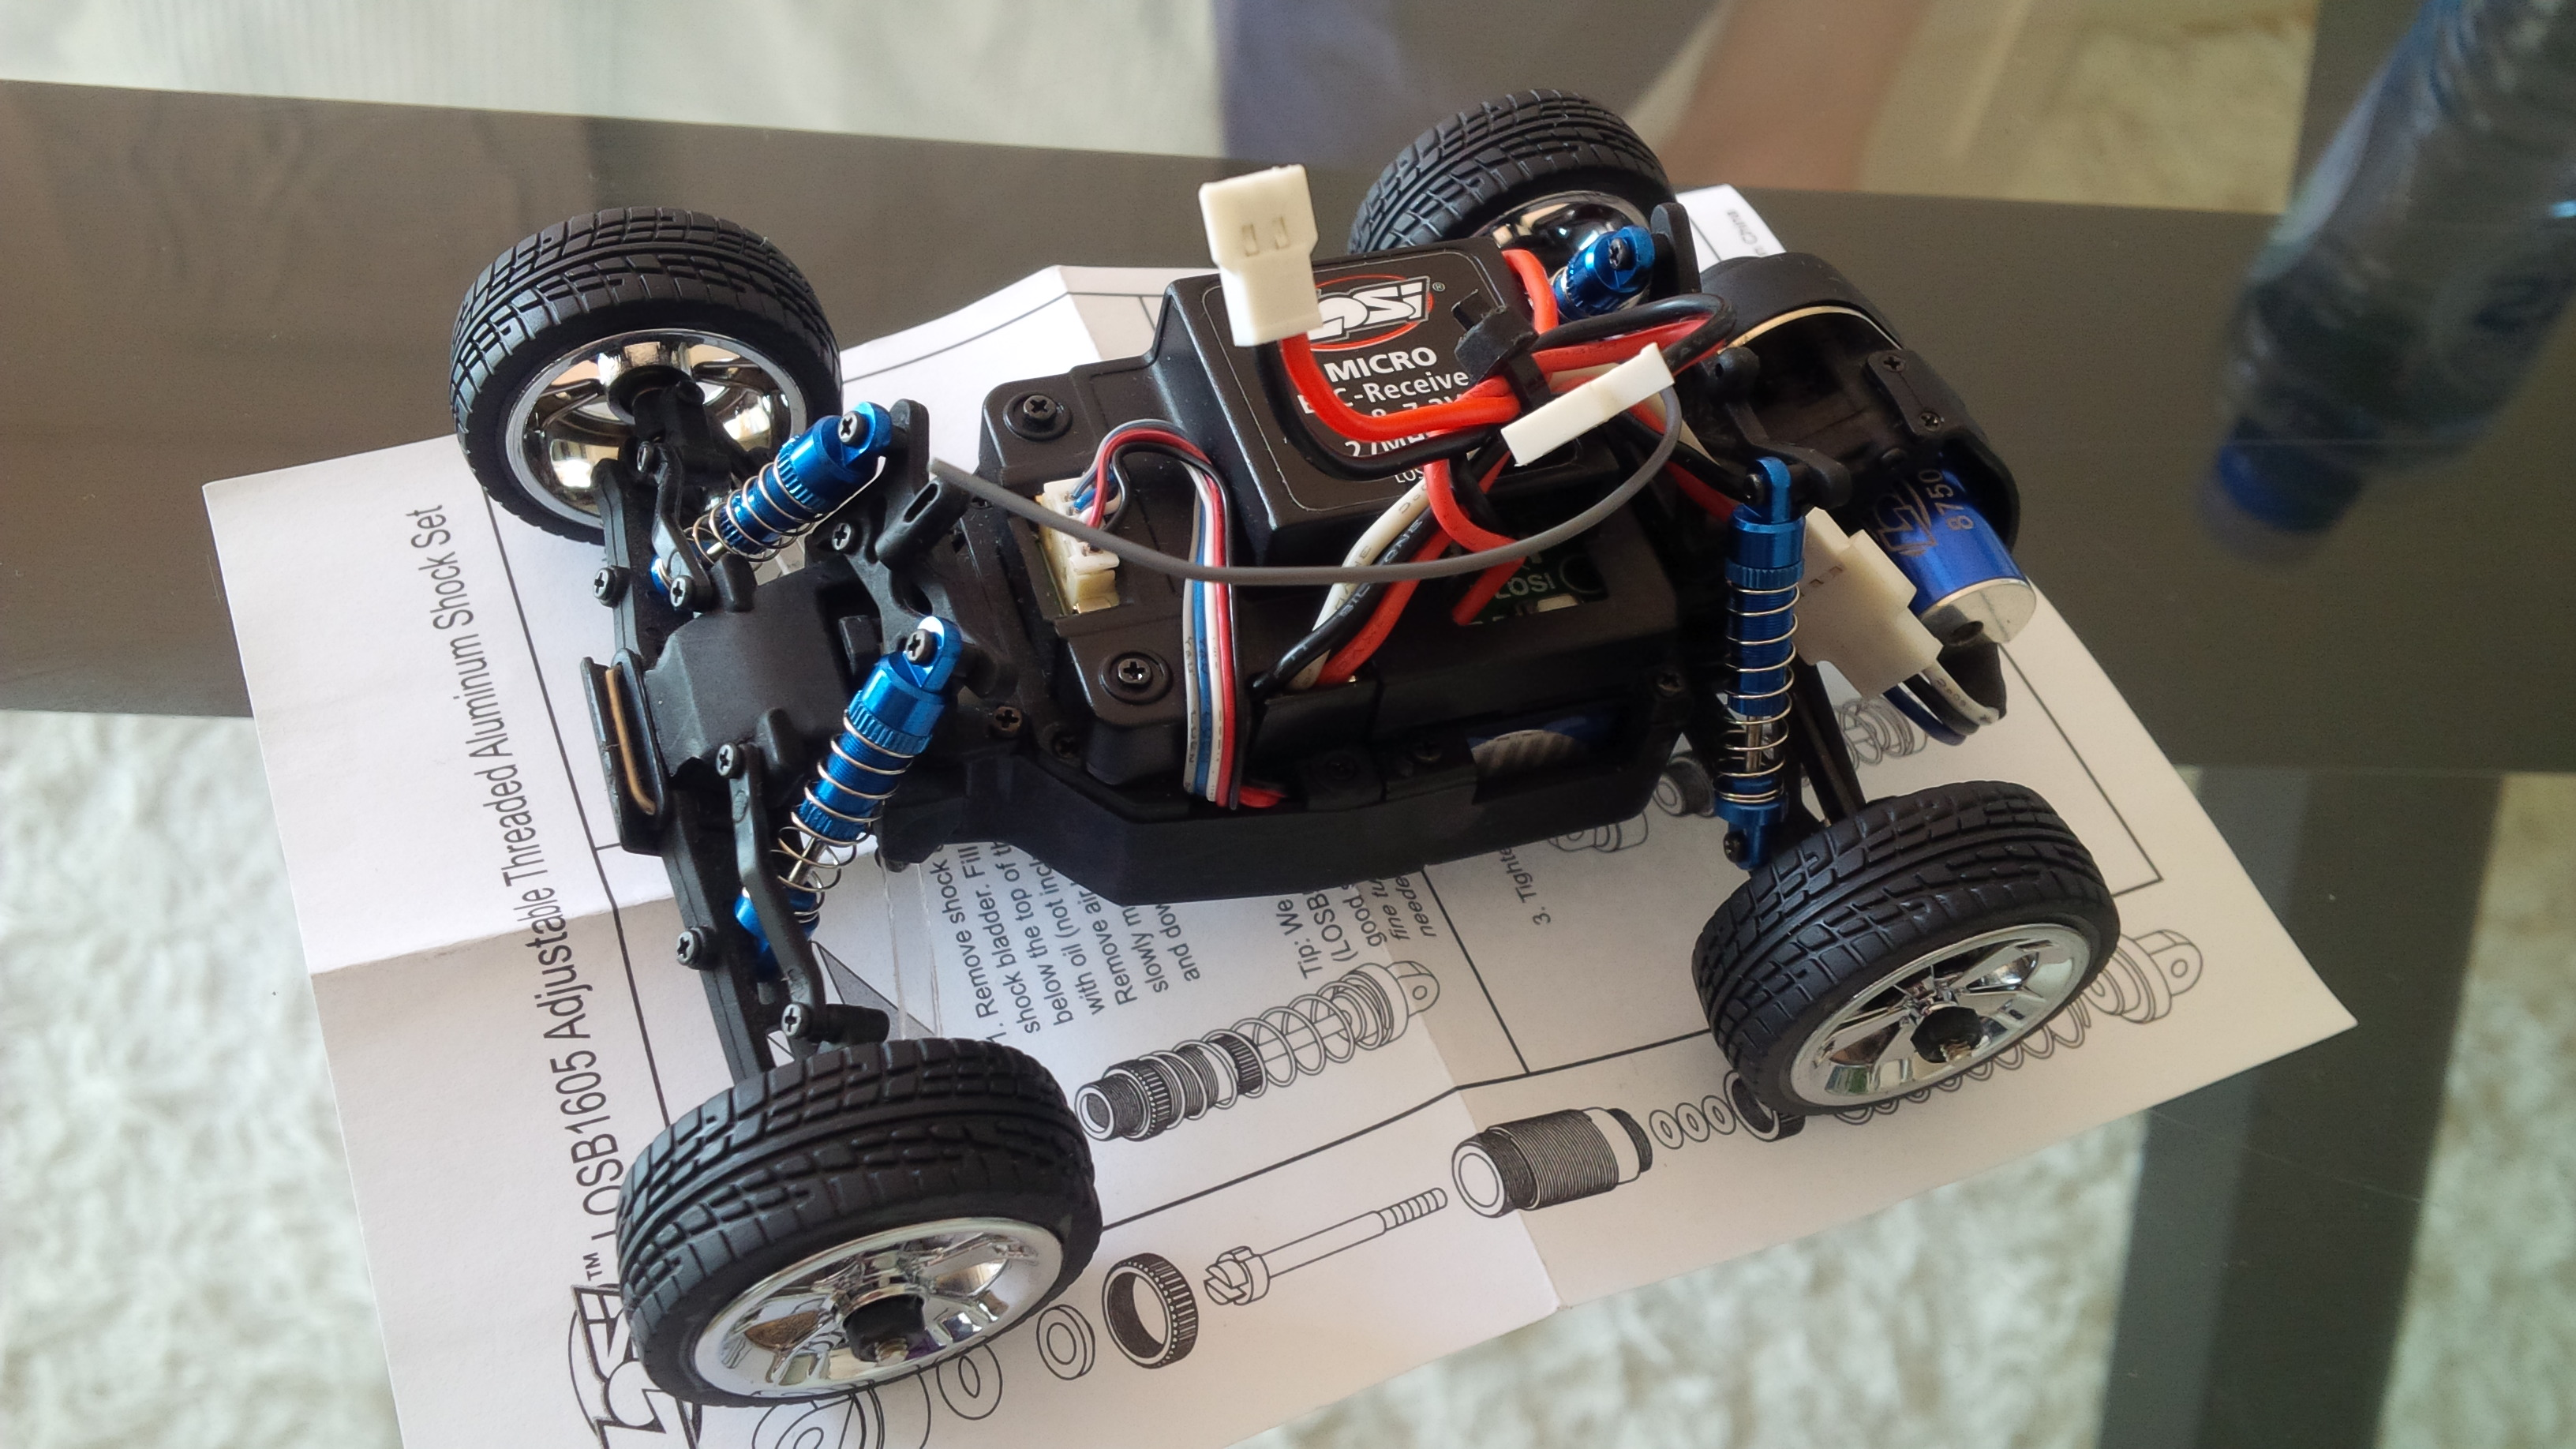 Mascot happily upgraded Losi Micro T